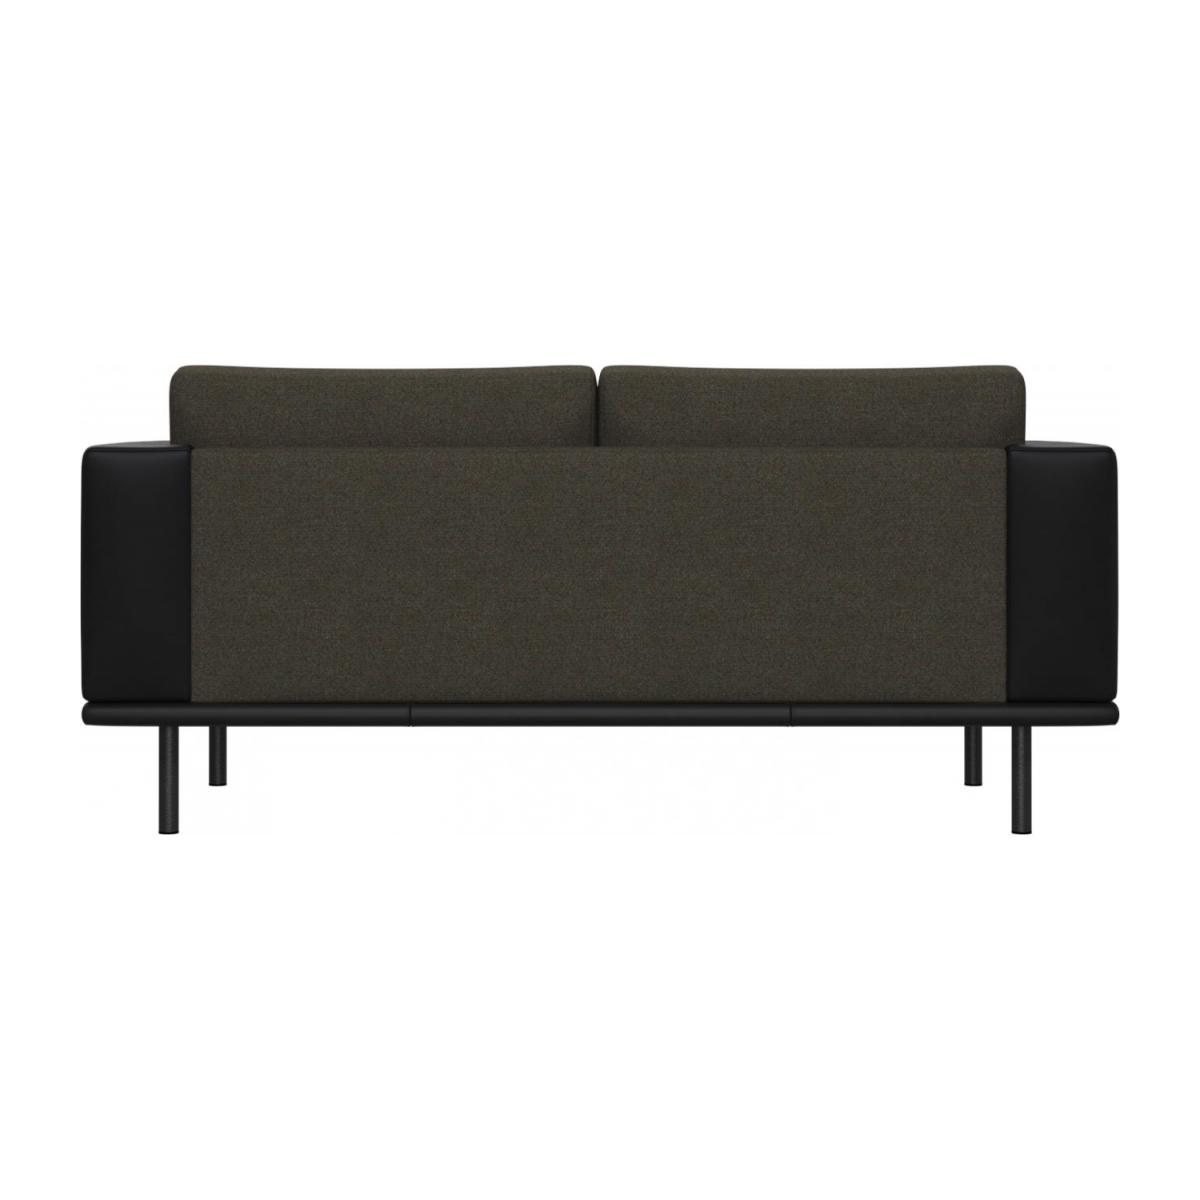 2 seater sofa in Lecce fabric, slade grey with base and armrests in black leather n°3